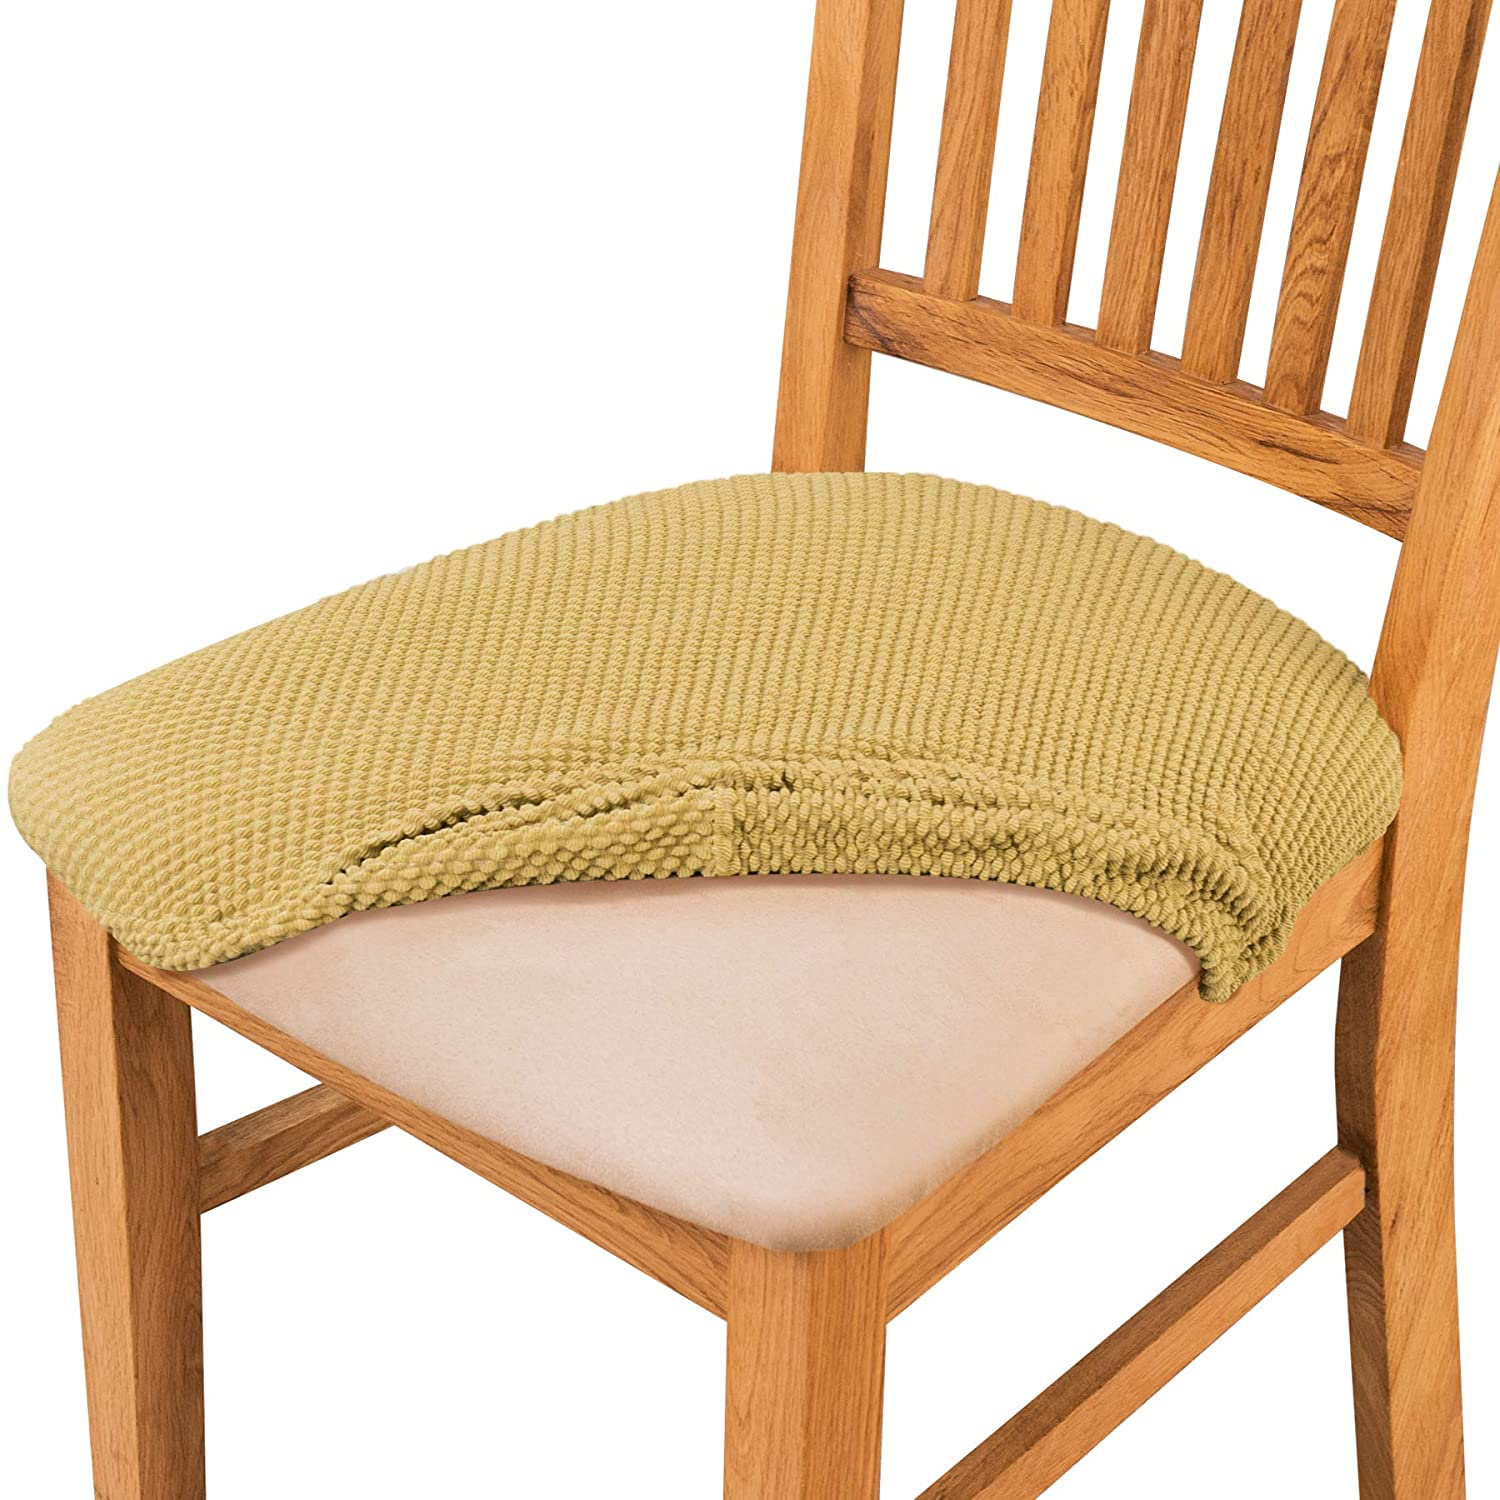 Groovy Subrtex Jacquard Dining Room Chair Slipcovers Sets High Stretch Chair Furniture Protector Covers Removable Washable Elastic Seat Cover For Chair Short Links Chair Design For Home Short Linksinfo